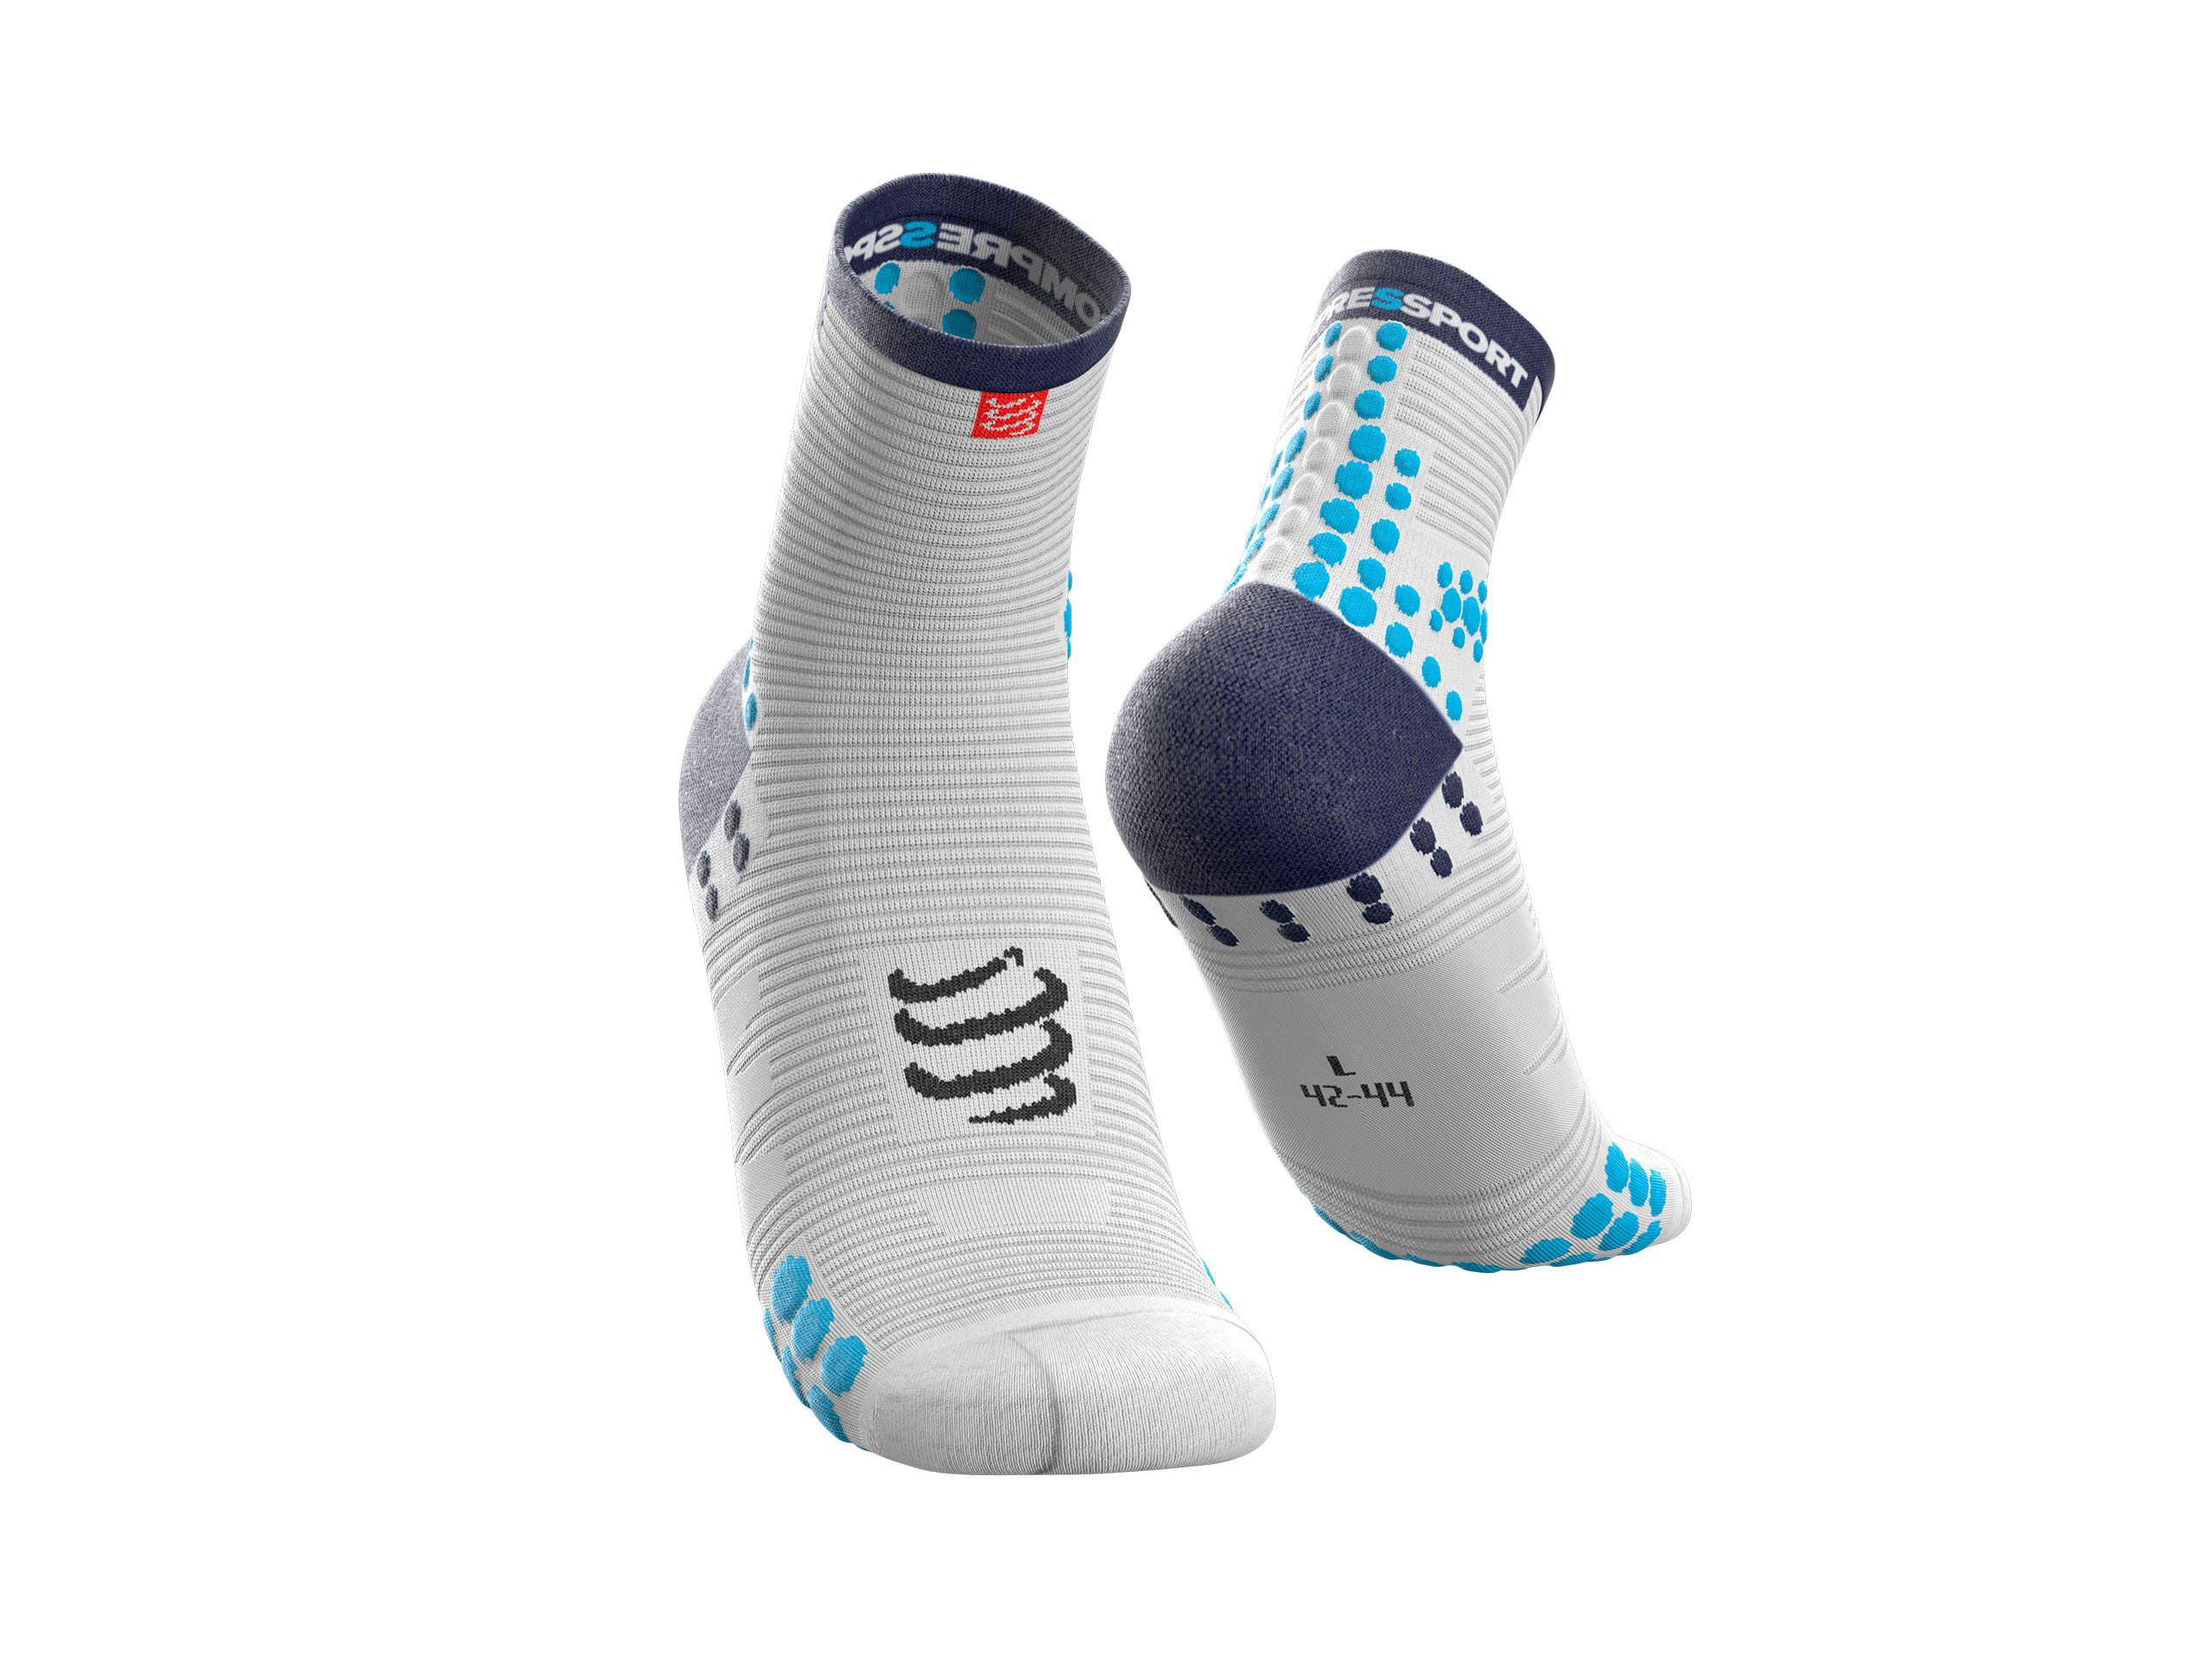 Calcetines deportivos pro v3.0 Run High blanco/azul